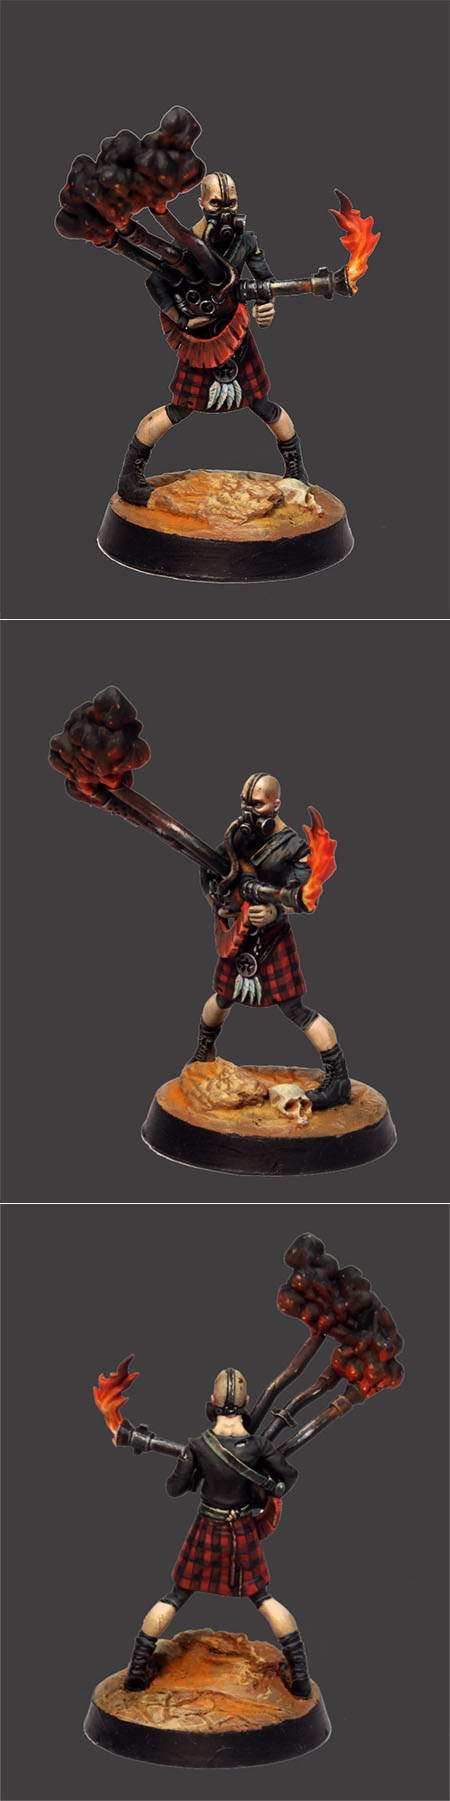 Punkapocalyptic – Black Blood Children Flamethrower